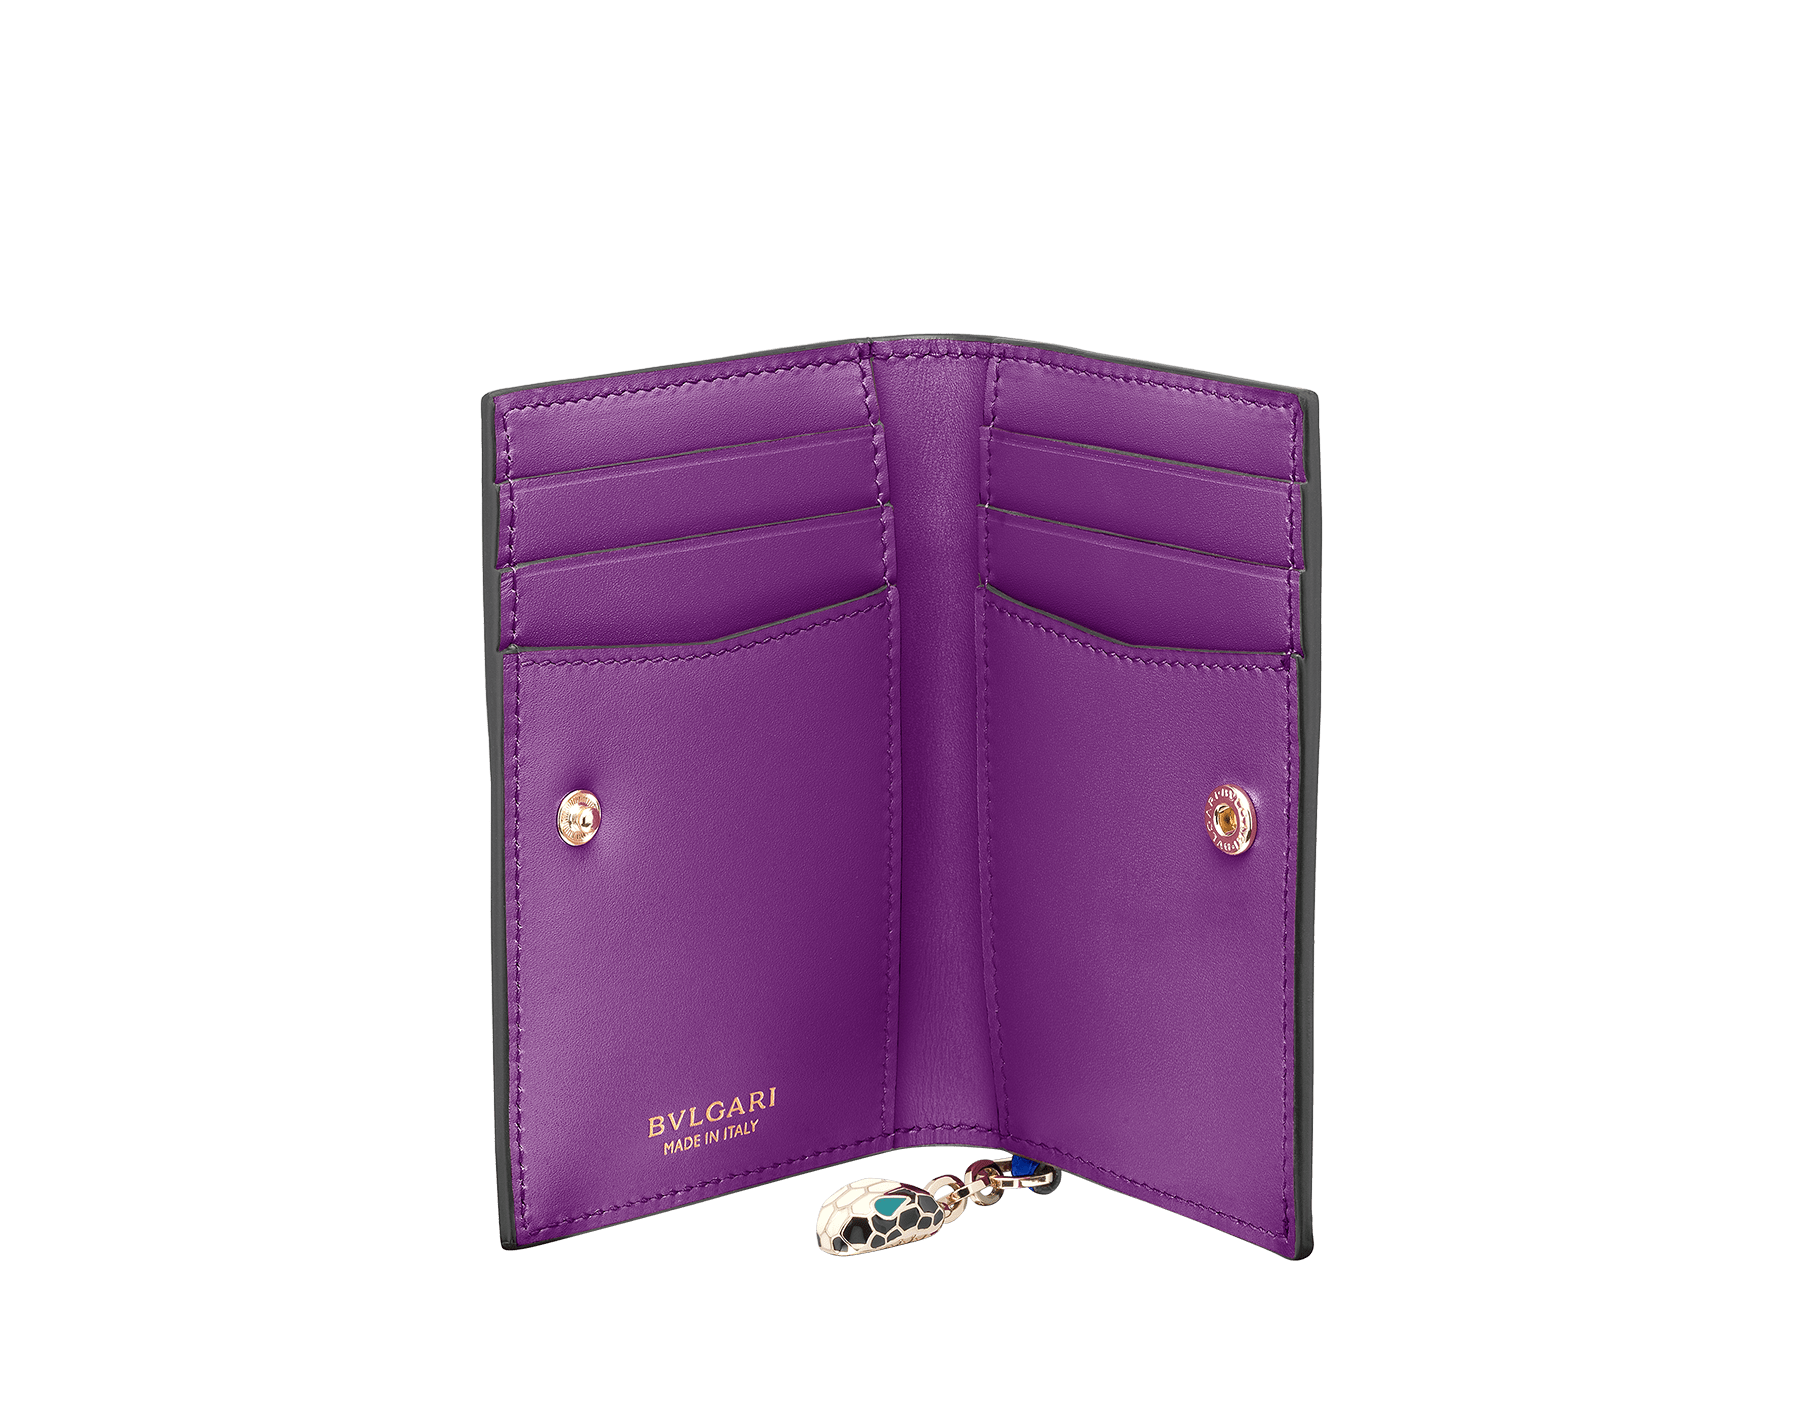 Serpenti Forever folded credit card holder in Roman garnet and pink spinel calf leather. Snakehead charm with black and white enamel, and green malachite enamel eyes. SEA-CC-HOLDER-FOLD-CLc image 2